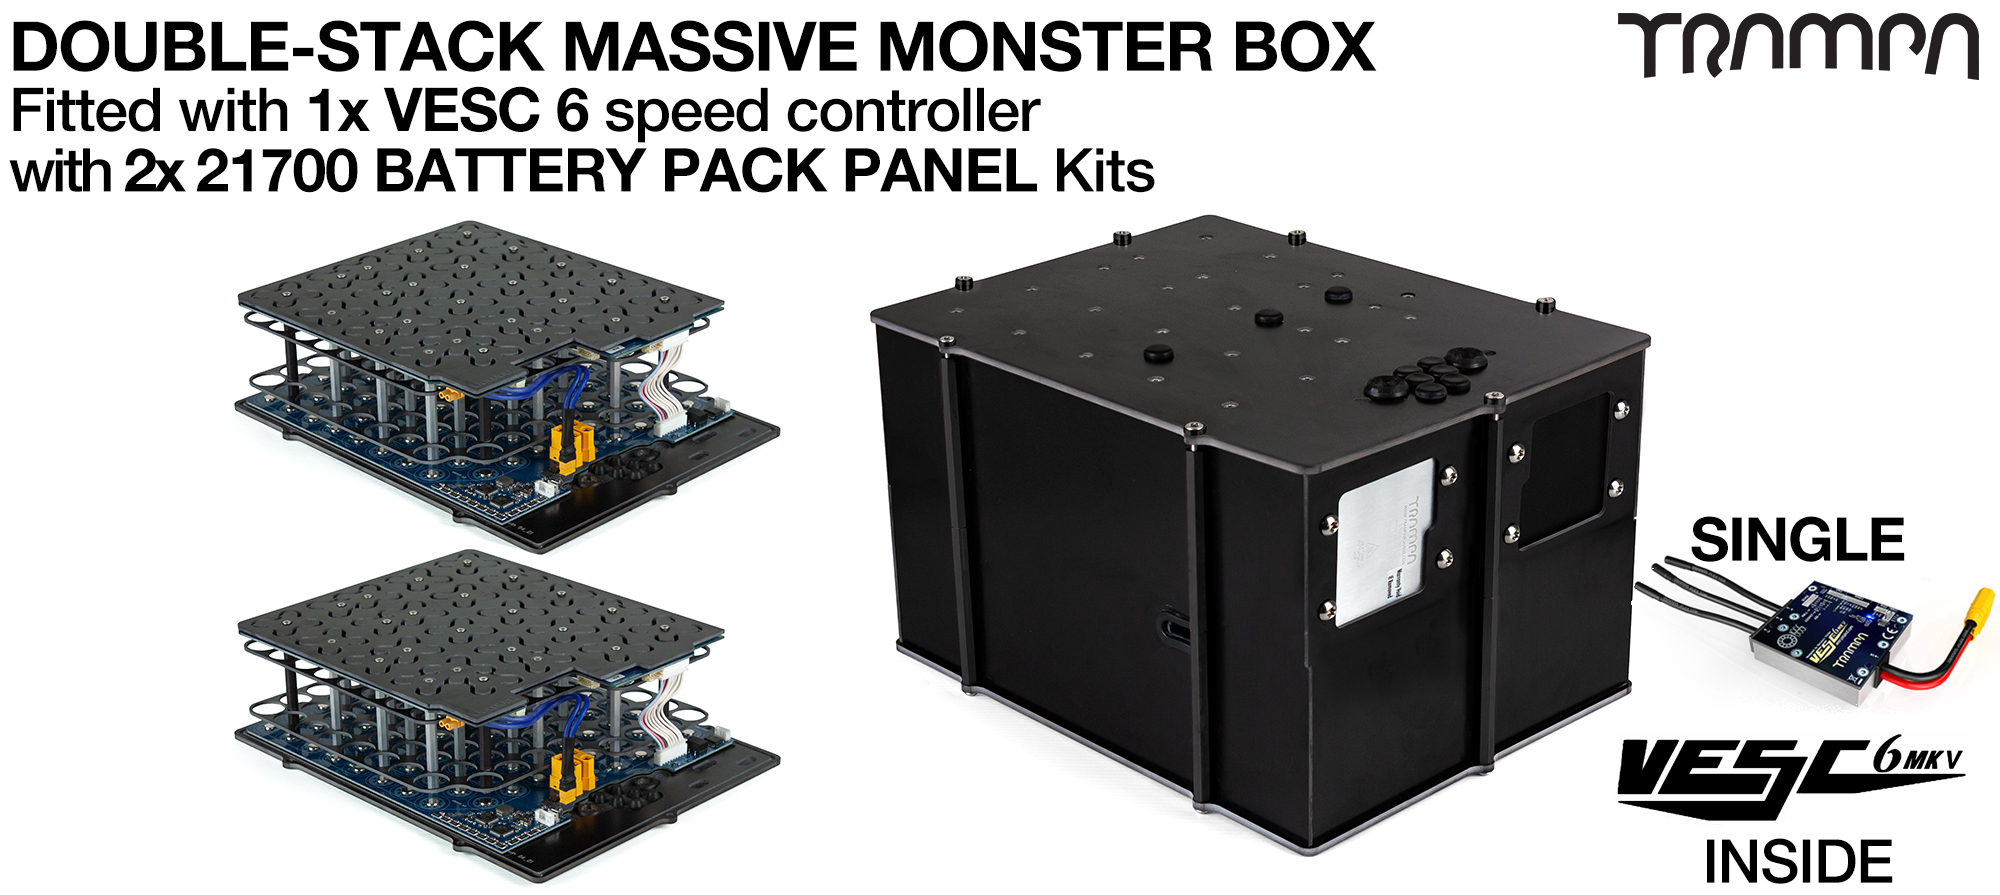 1WD DOUBLE STACK MASSIVE MONSTER Box with 21700 PCB Pack with 1x VESC 6 - NO CELLS